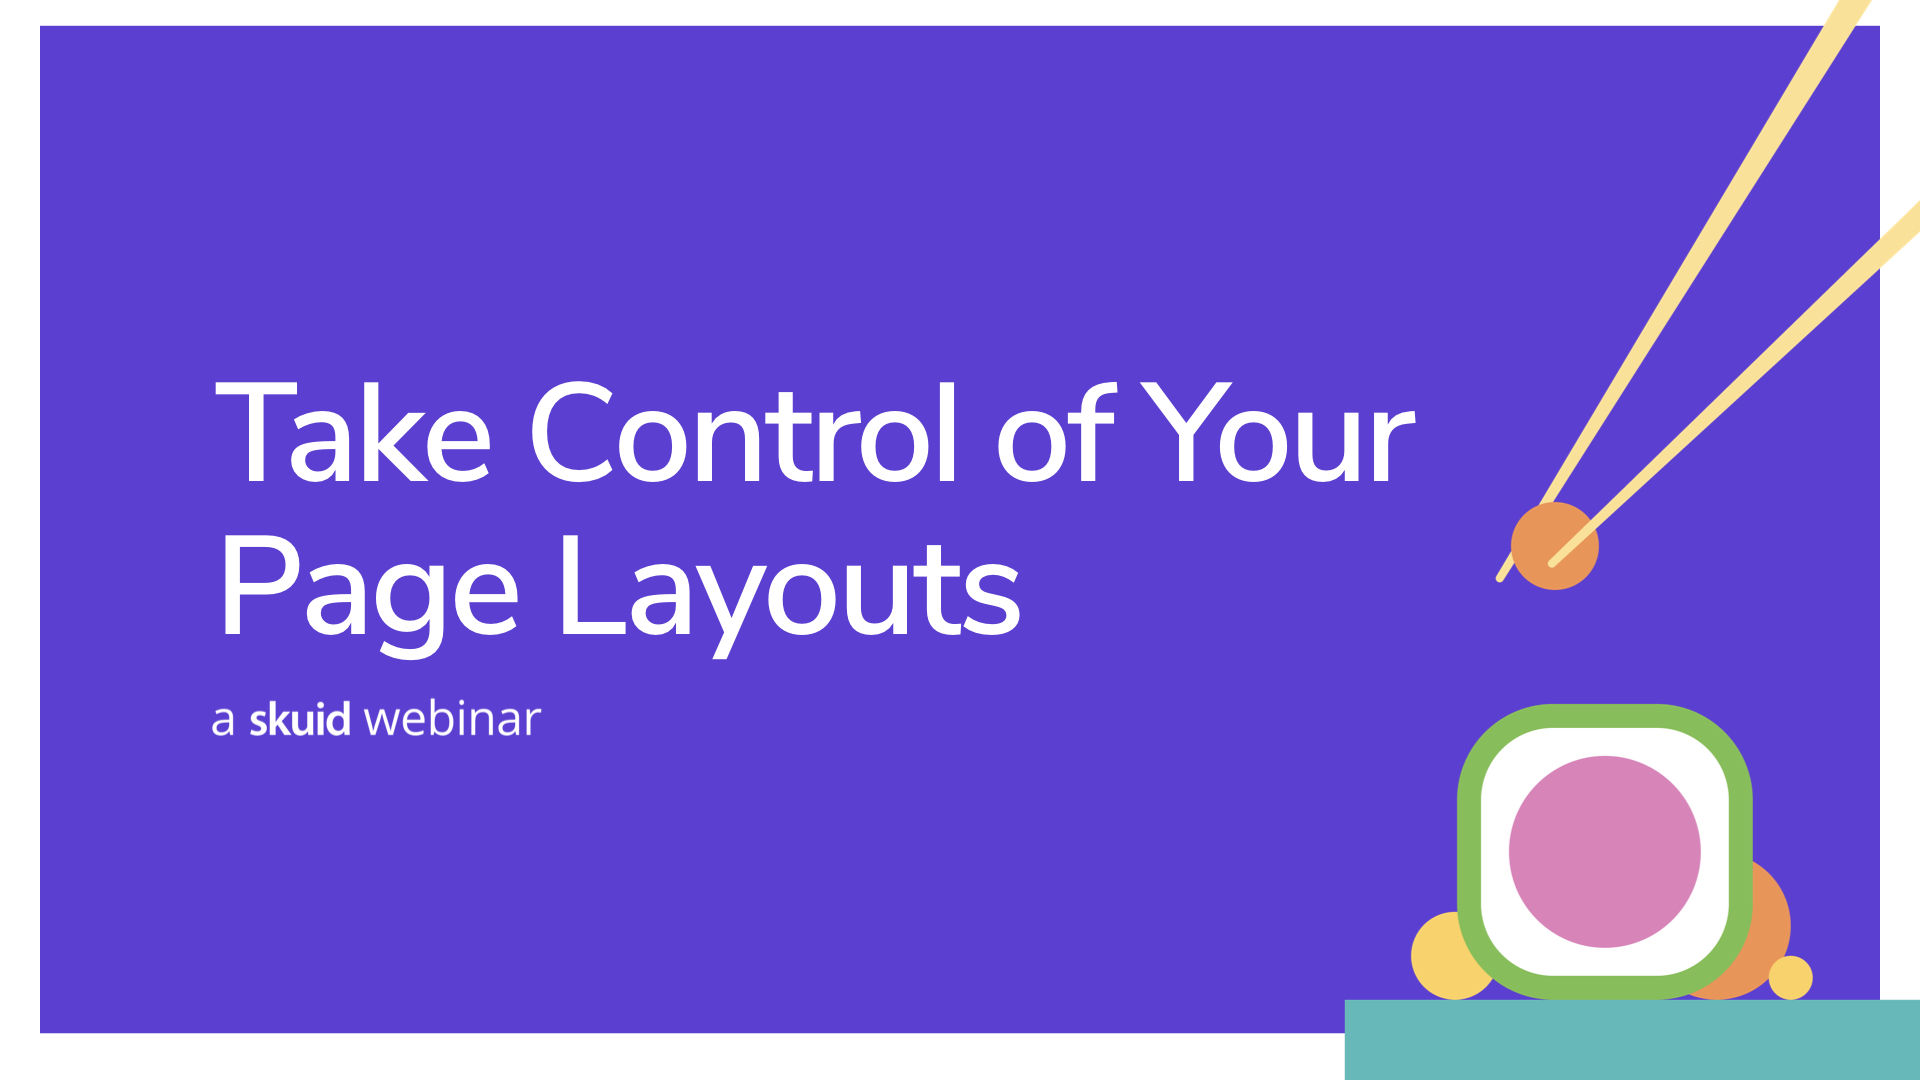 Take control of your page layouts.